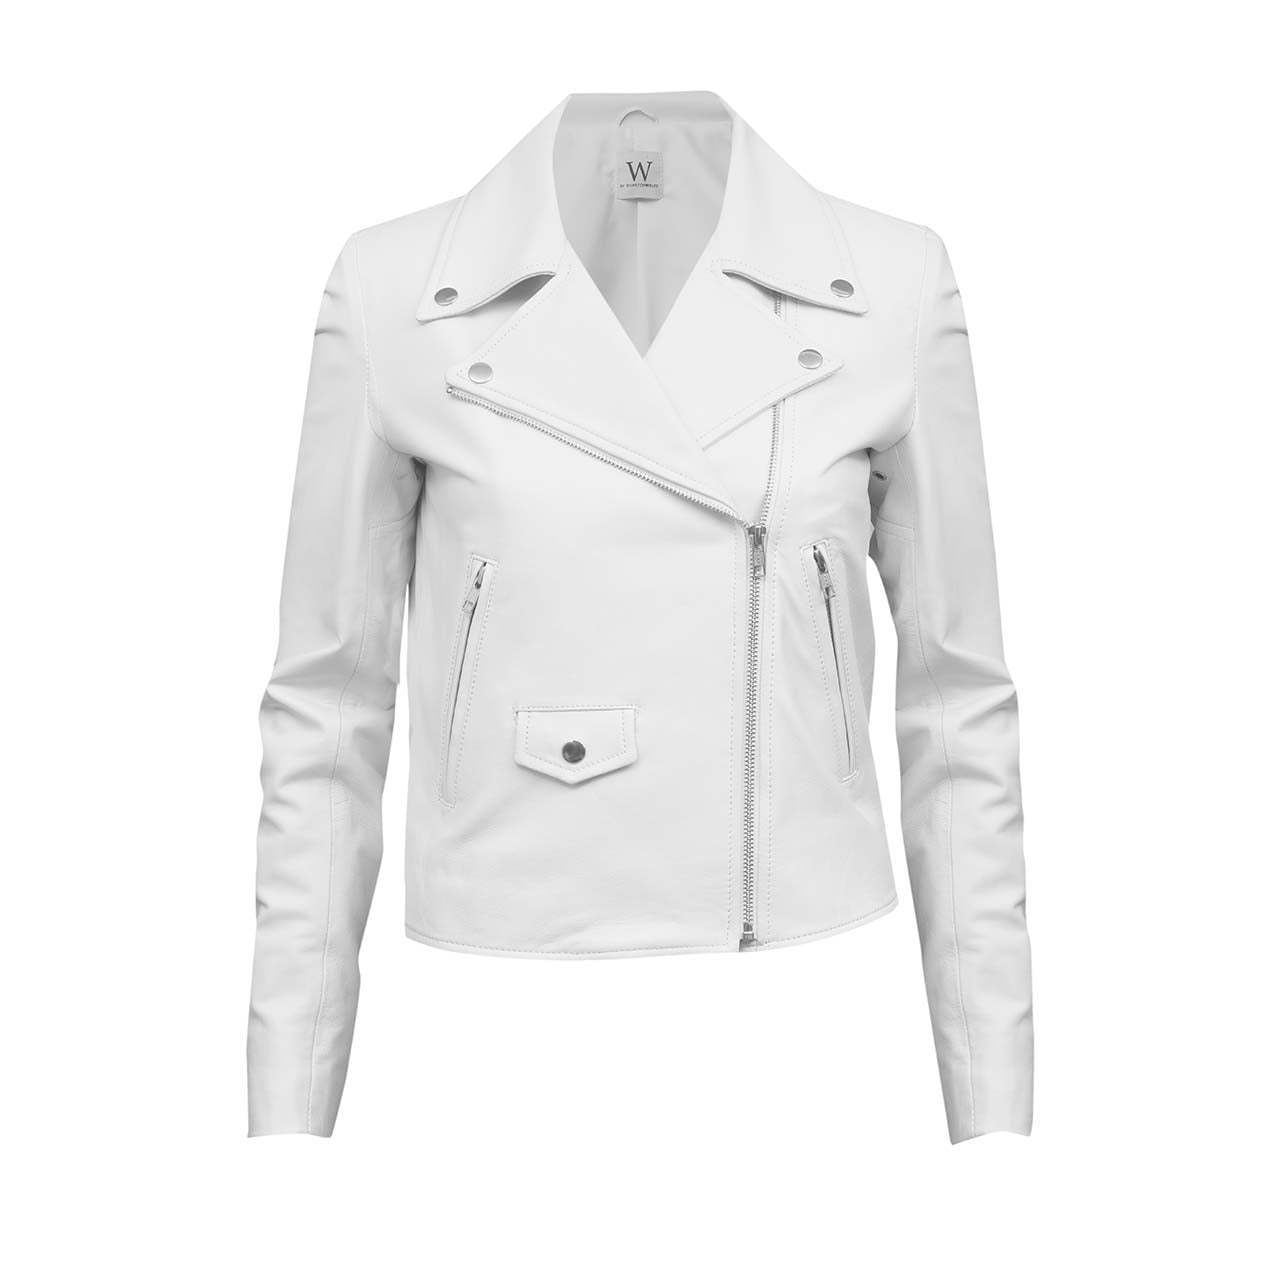 IVORY LEATHER JACKET - WINSTON WOLFE